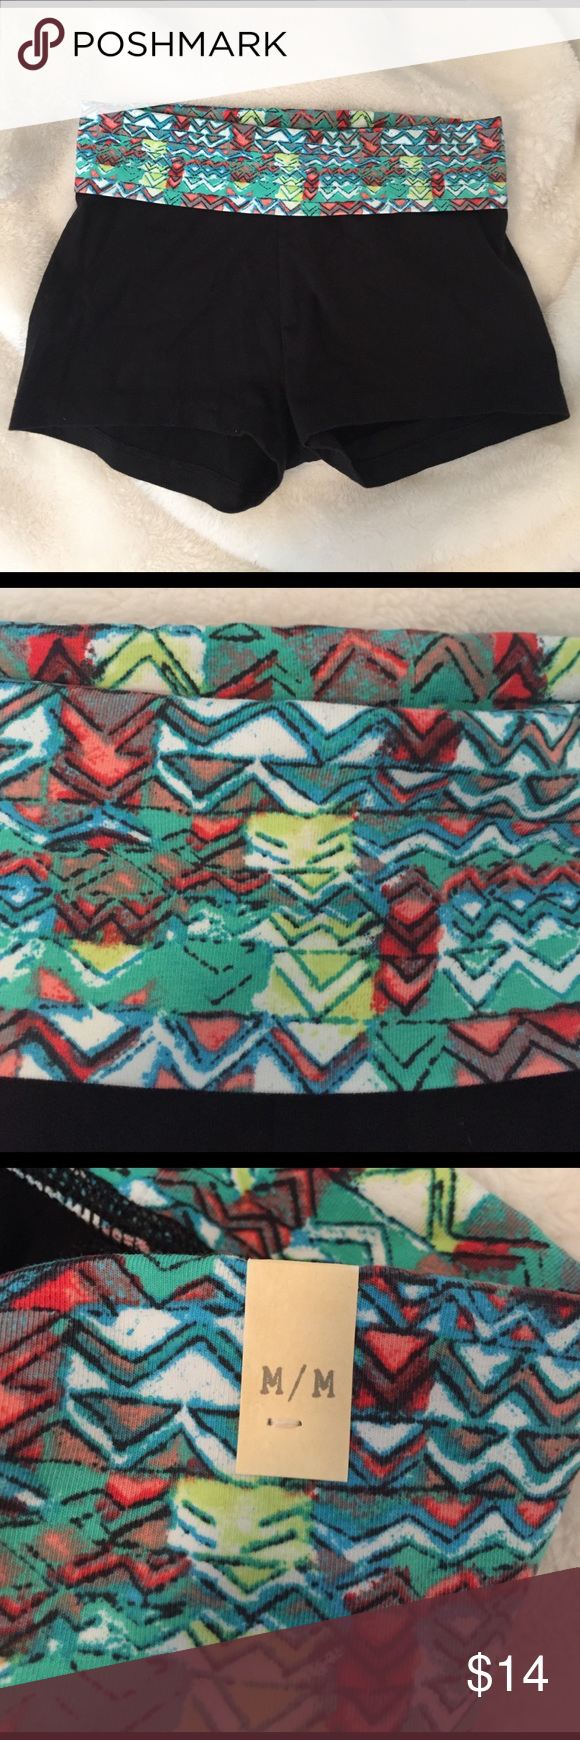 NWT Aerie Yoga Shorts NWT Aerie Yoga Shorts with multi colored Aztec band at the top aerie Shorts